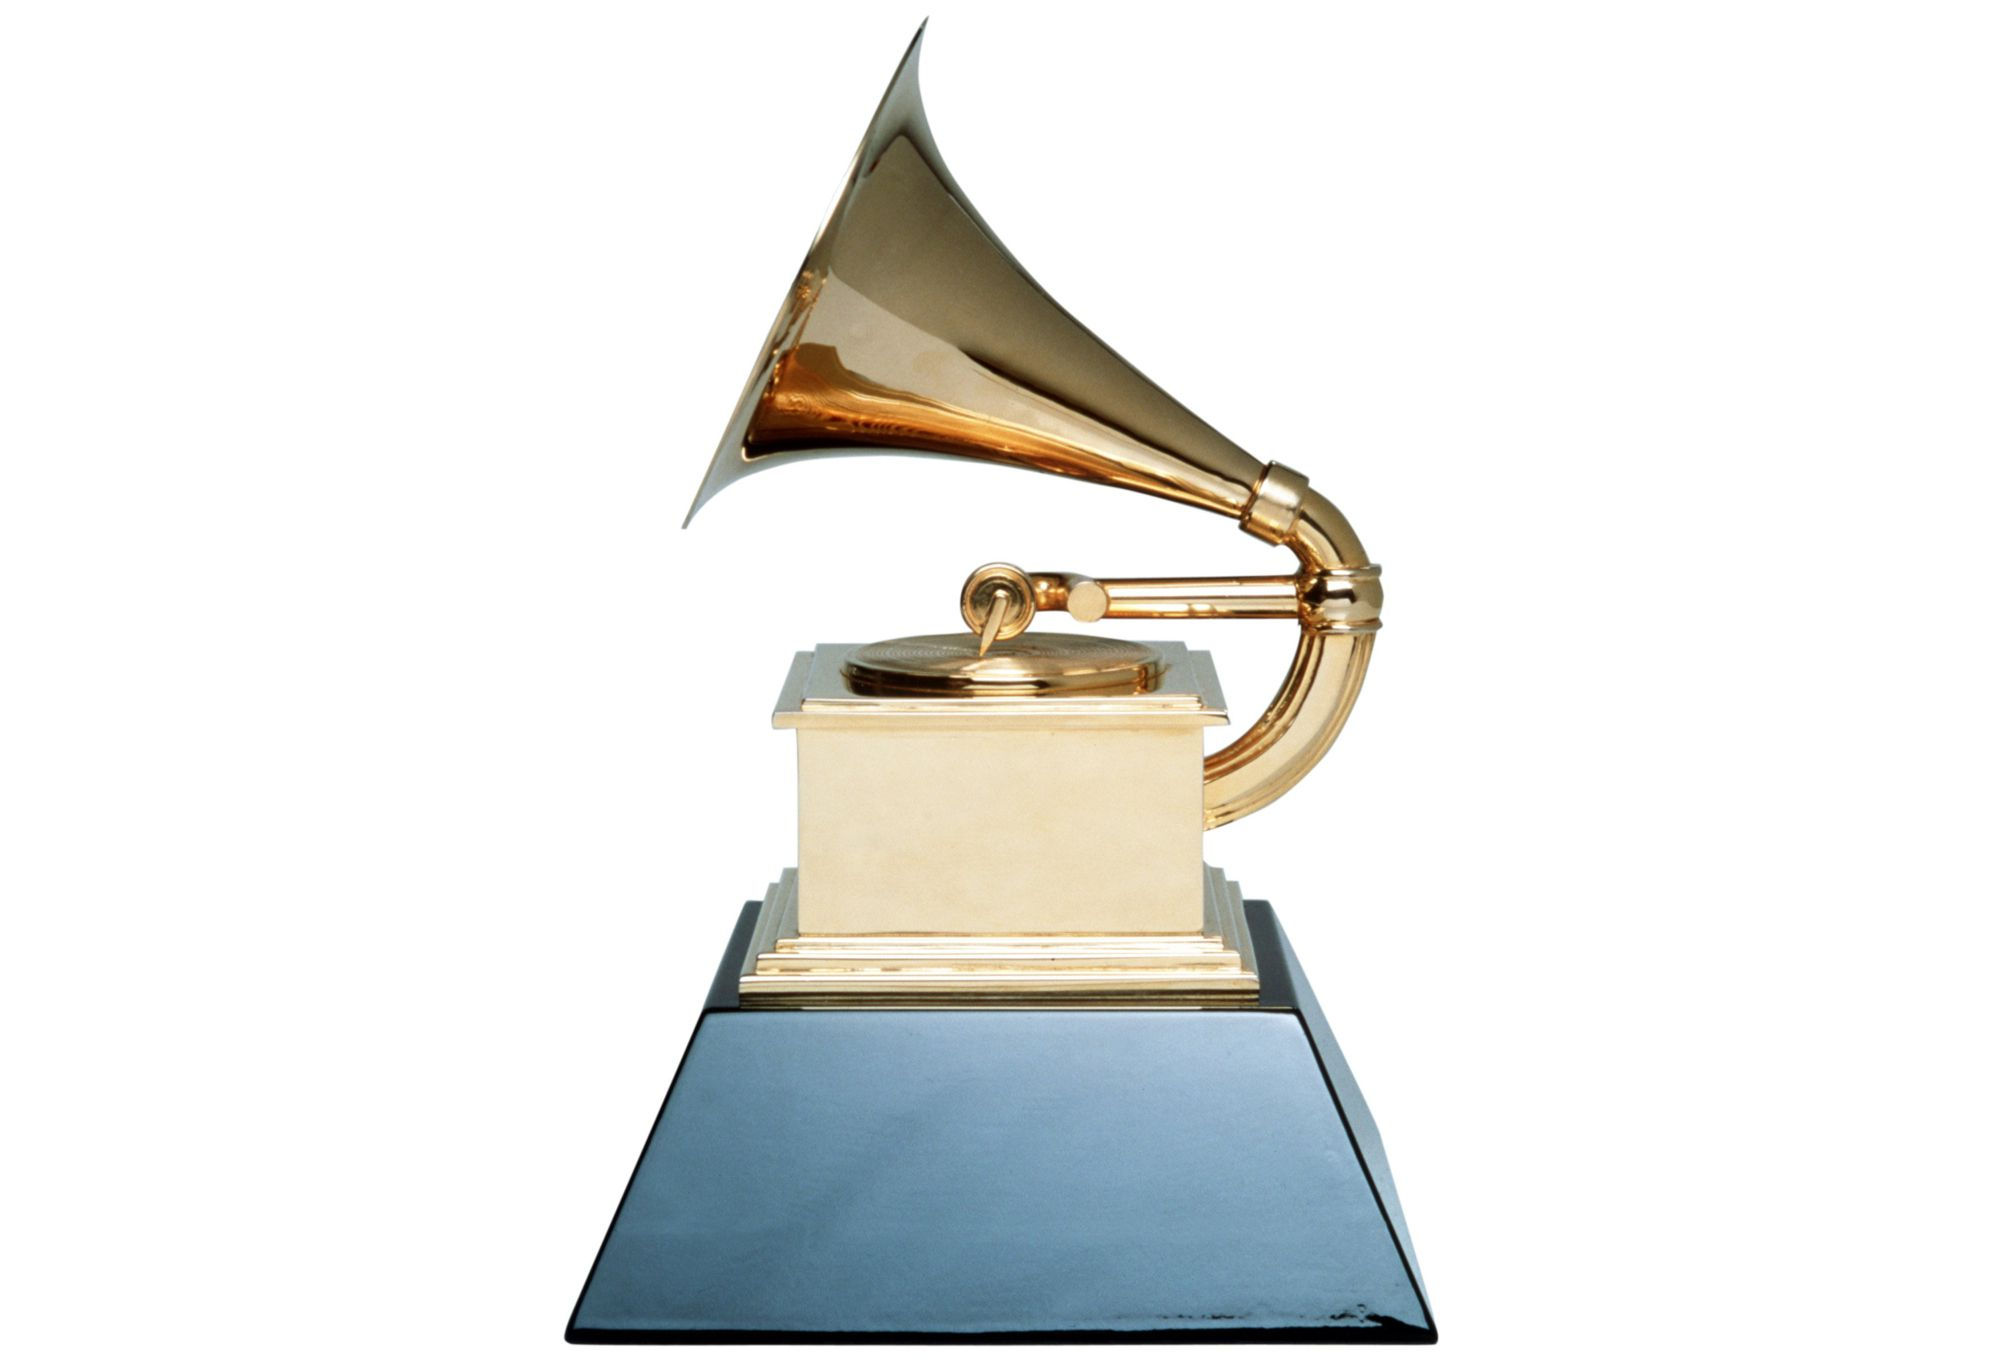 How Grammy Awards Winners Are Chosen